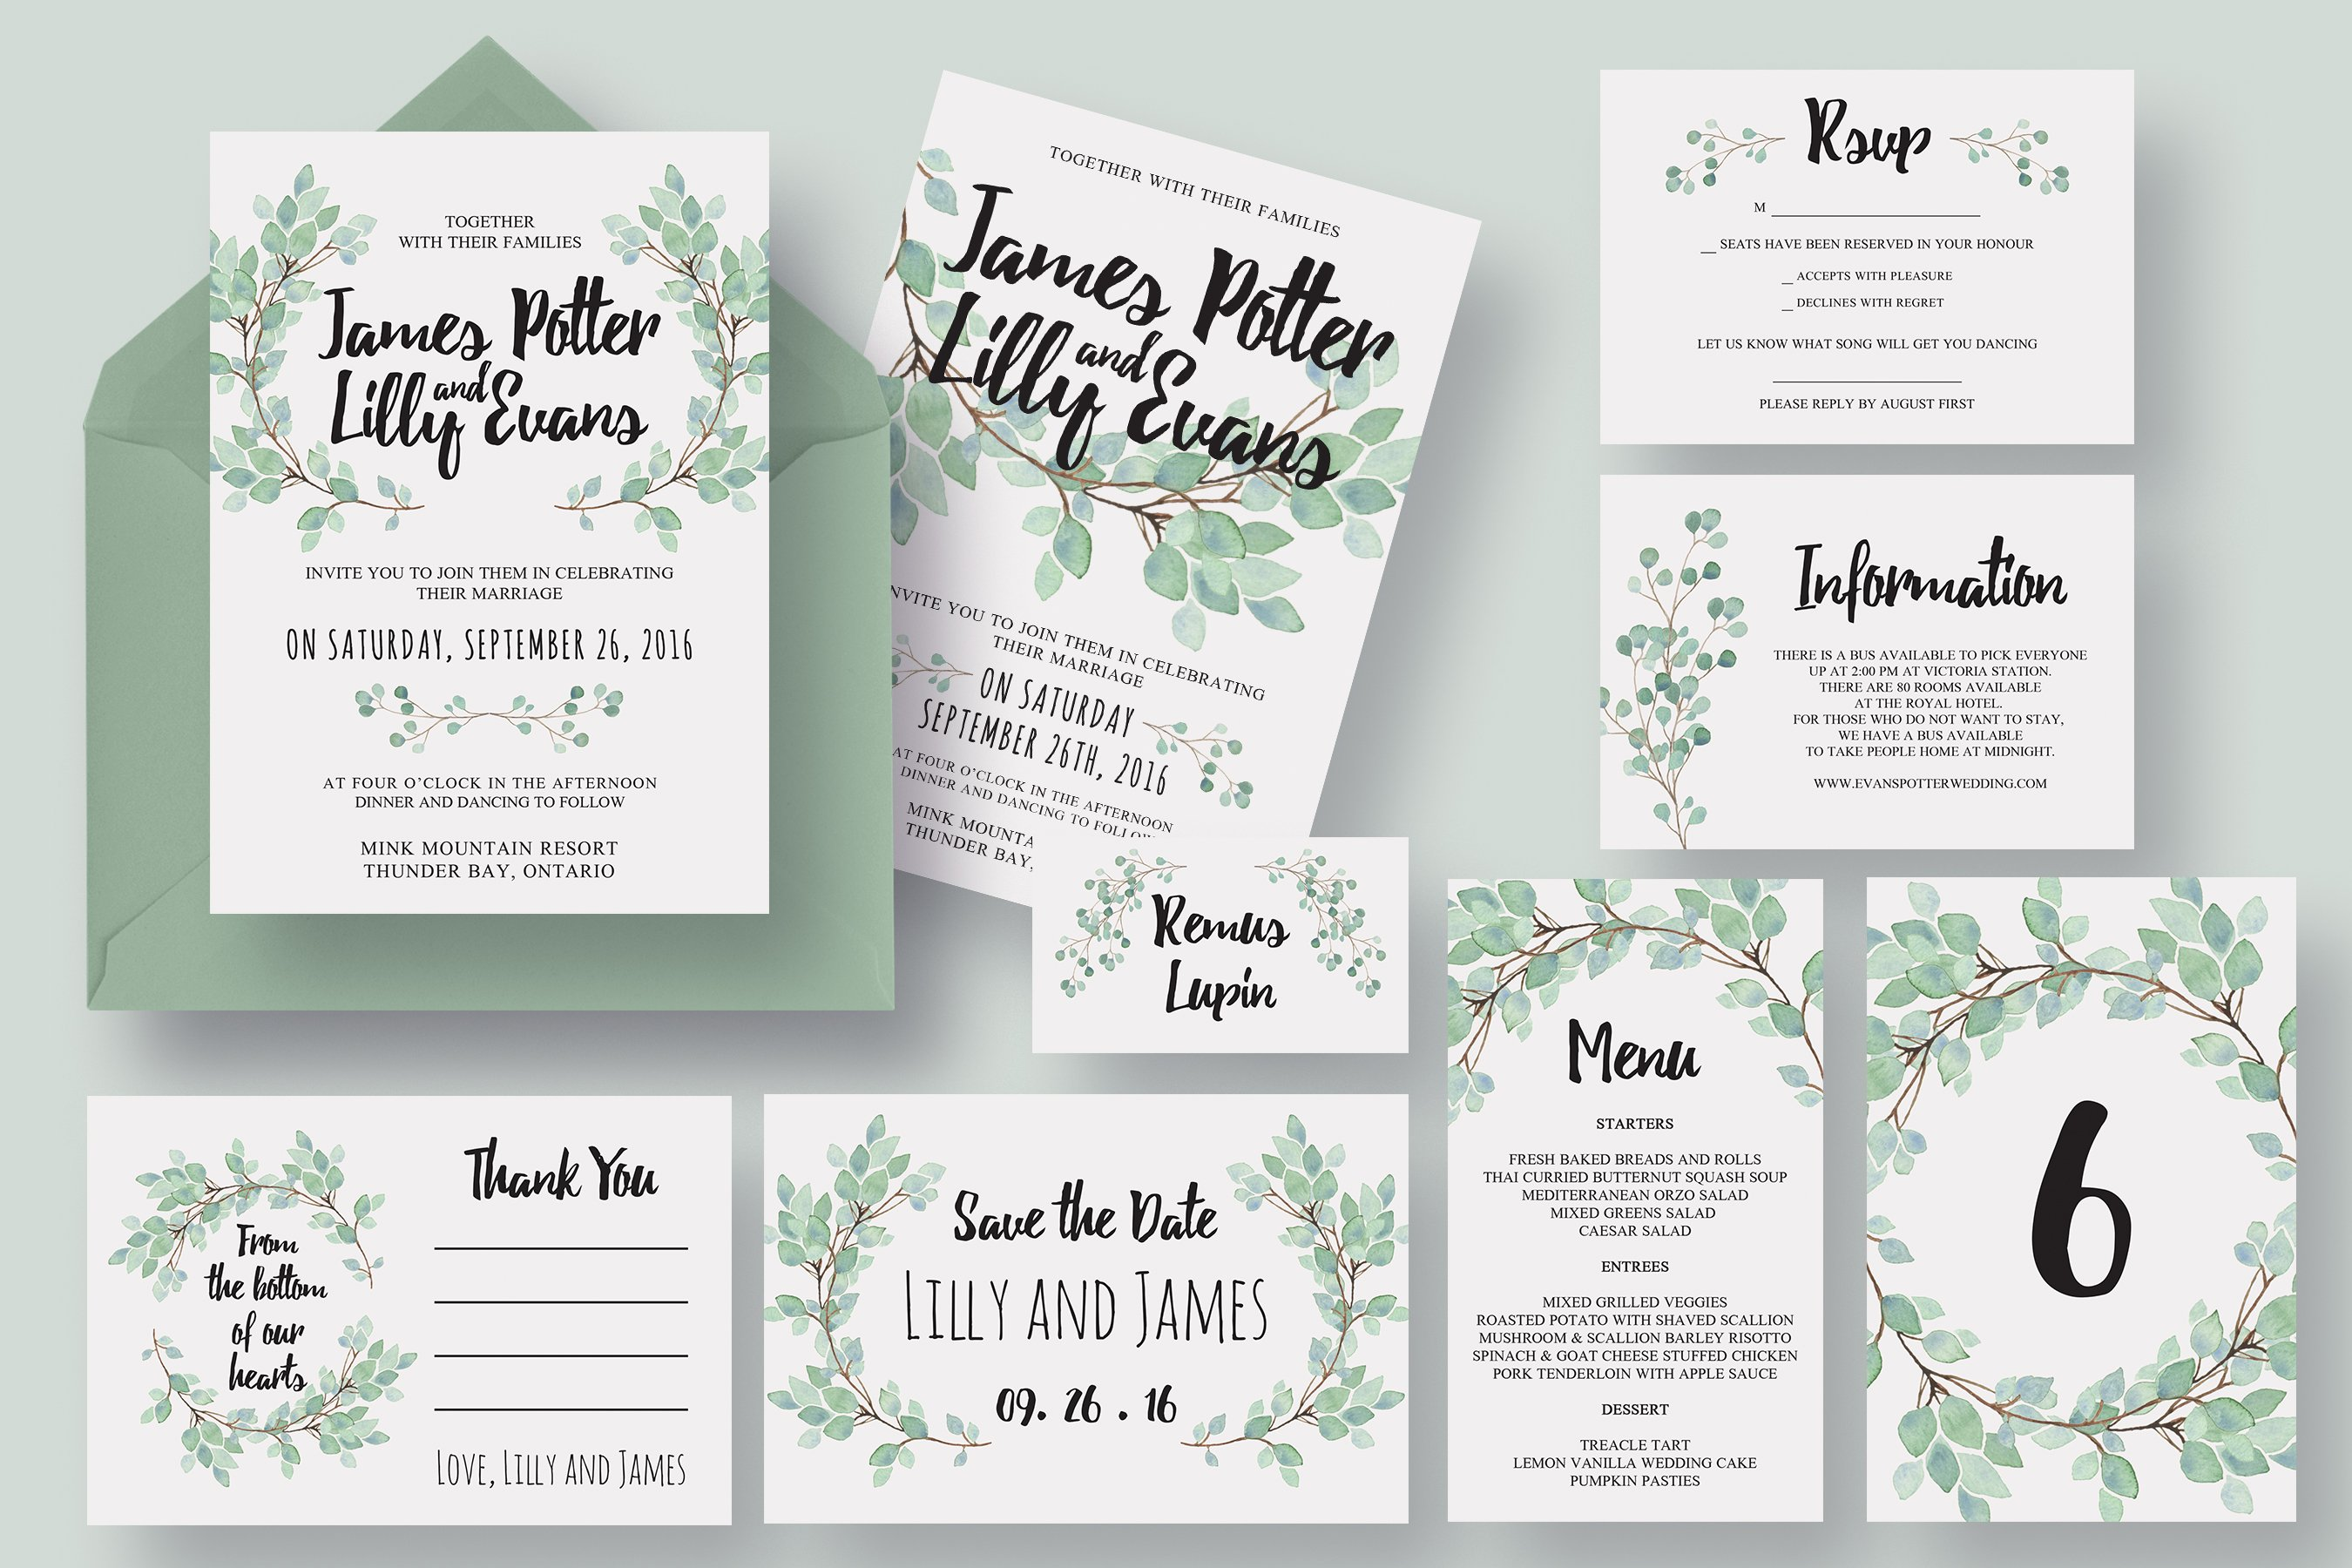 Wedding invitation Photos, Graphics, Fonts, Themes, Templates ...